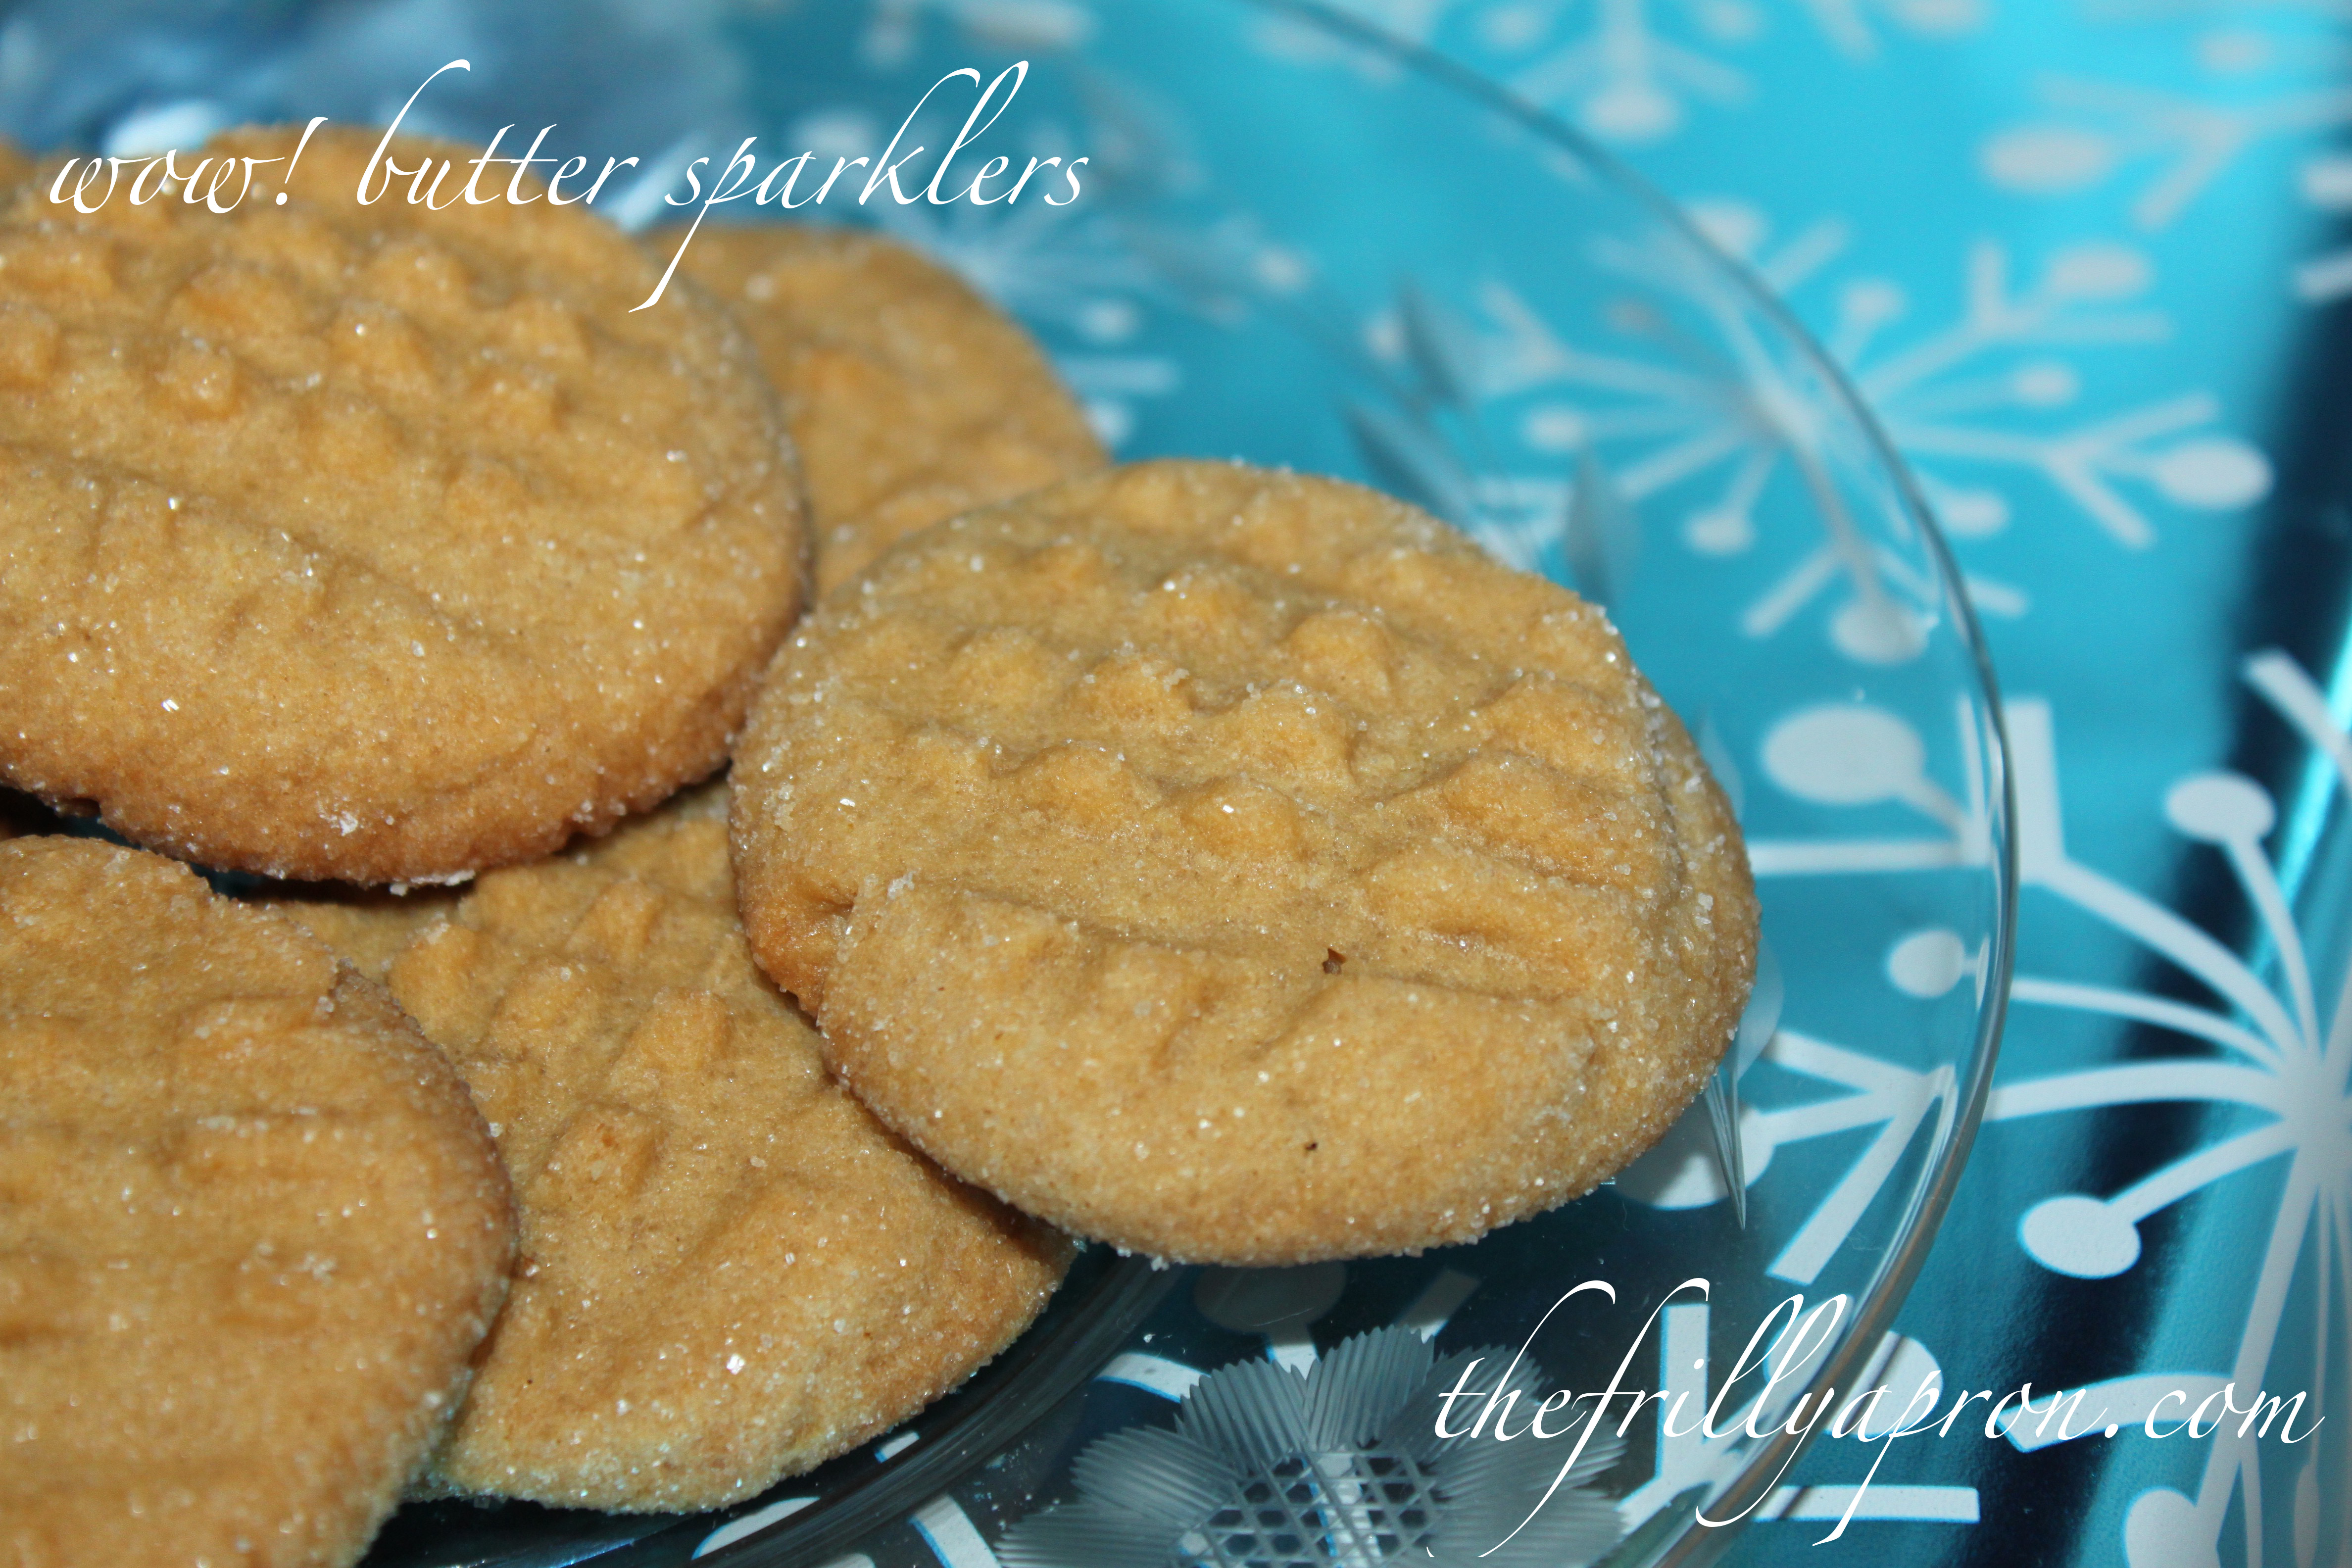 wow butter sparklers cover - Christmas Peanut Butter Cookies